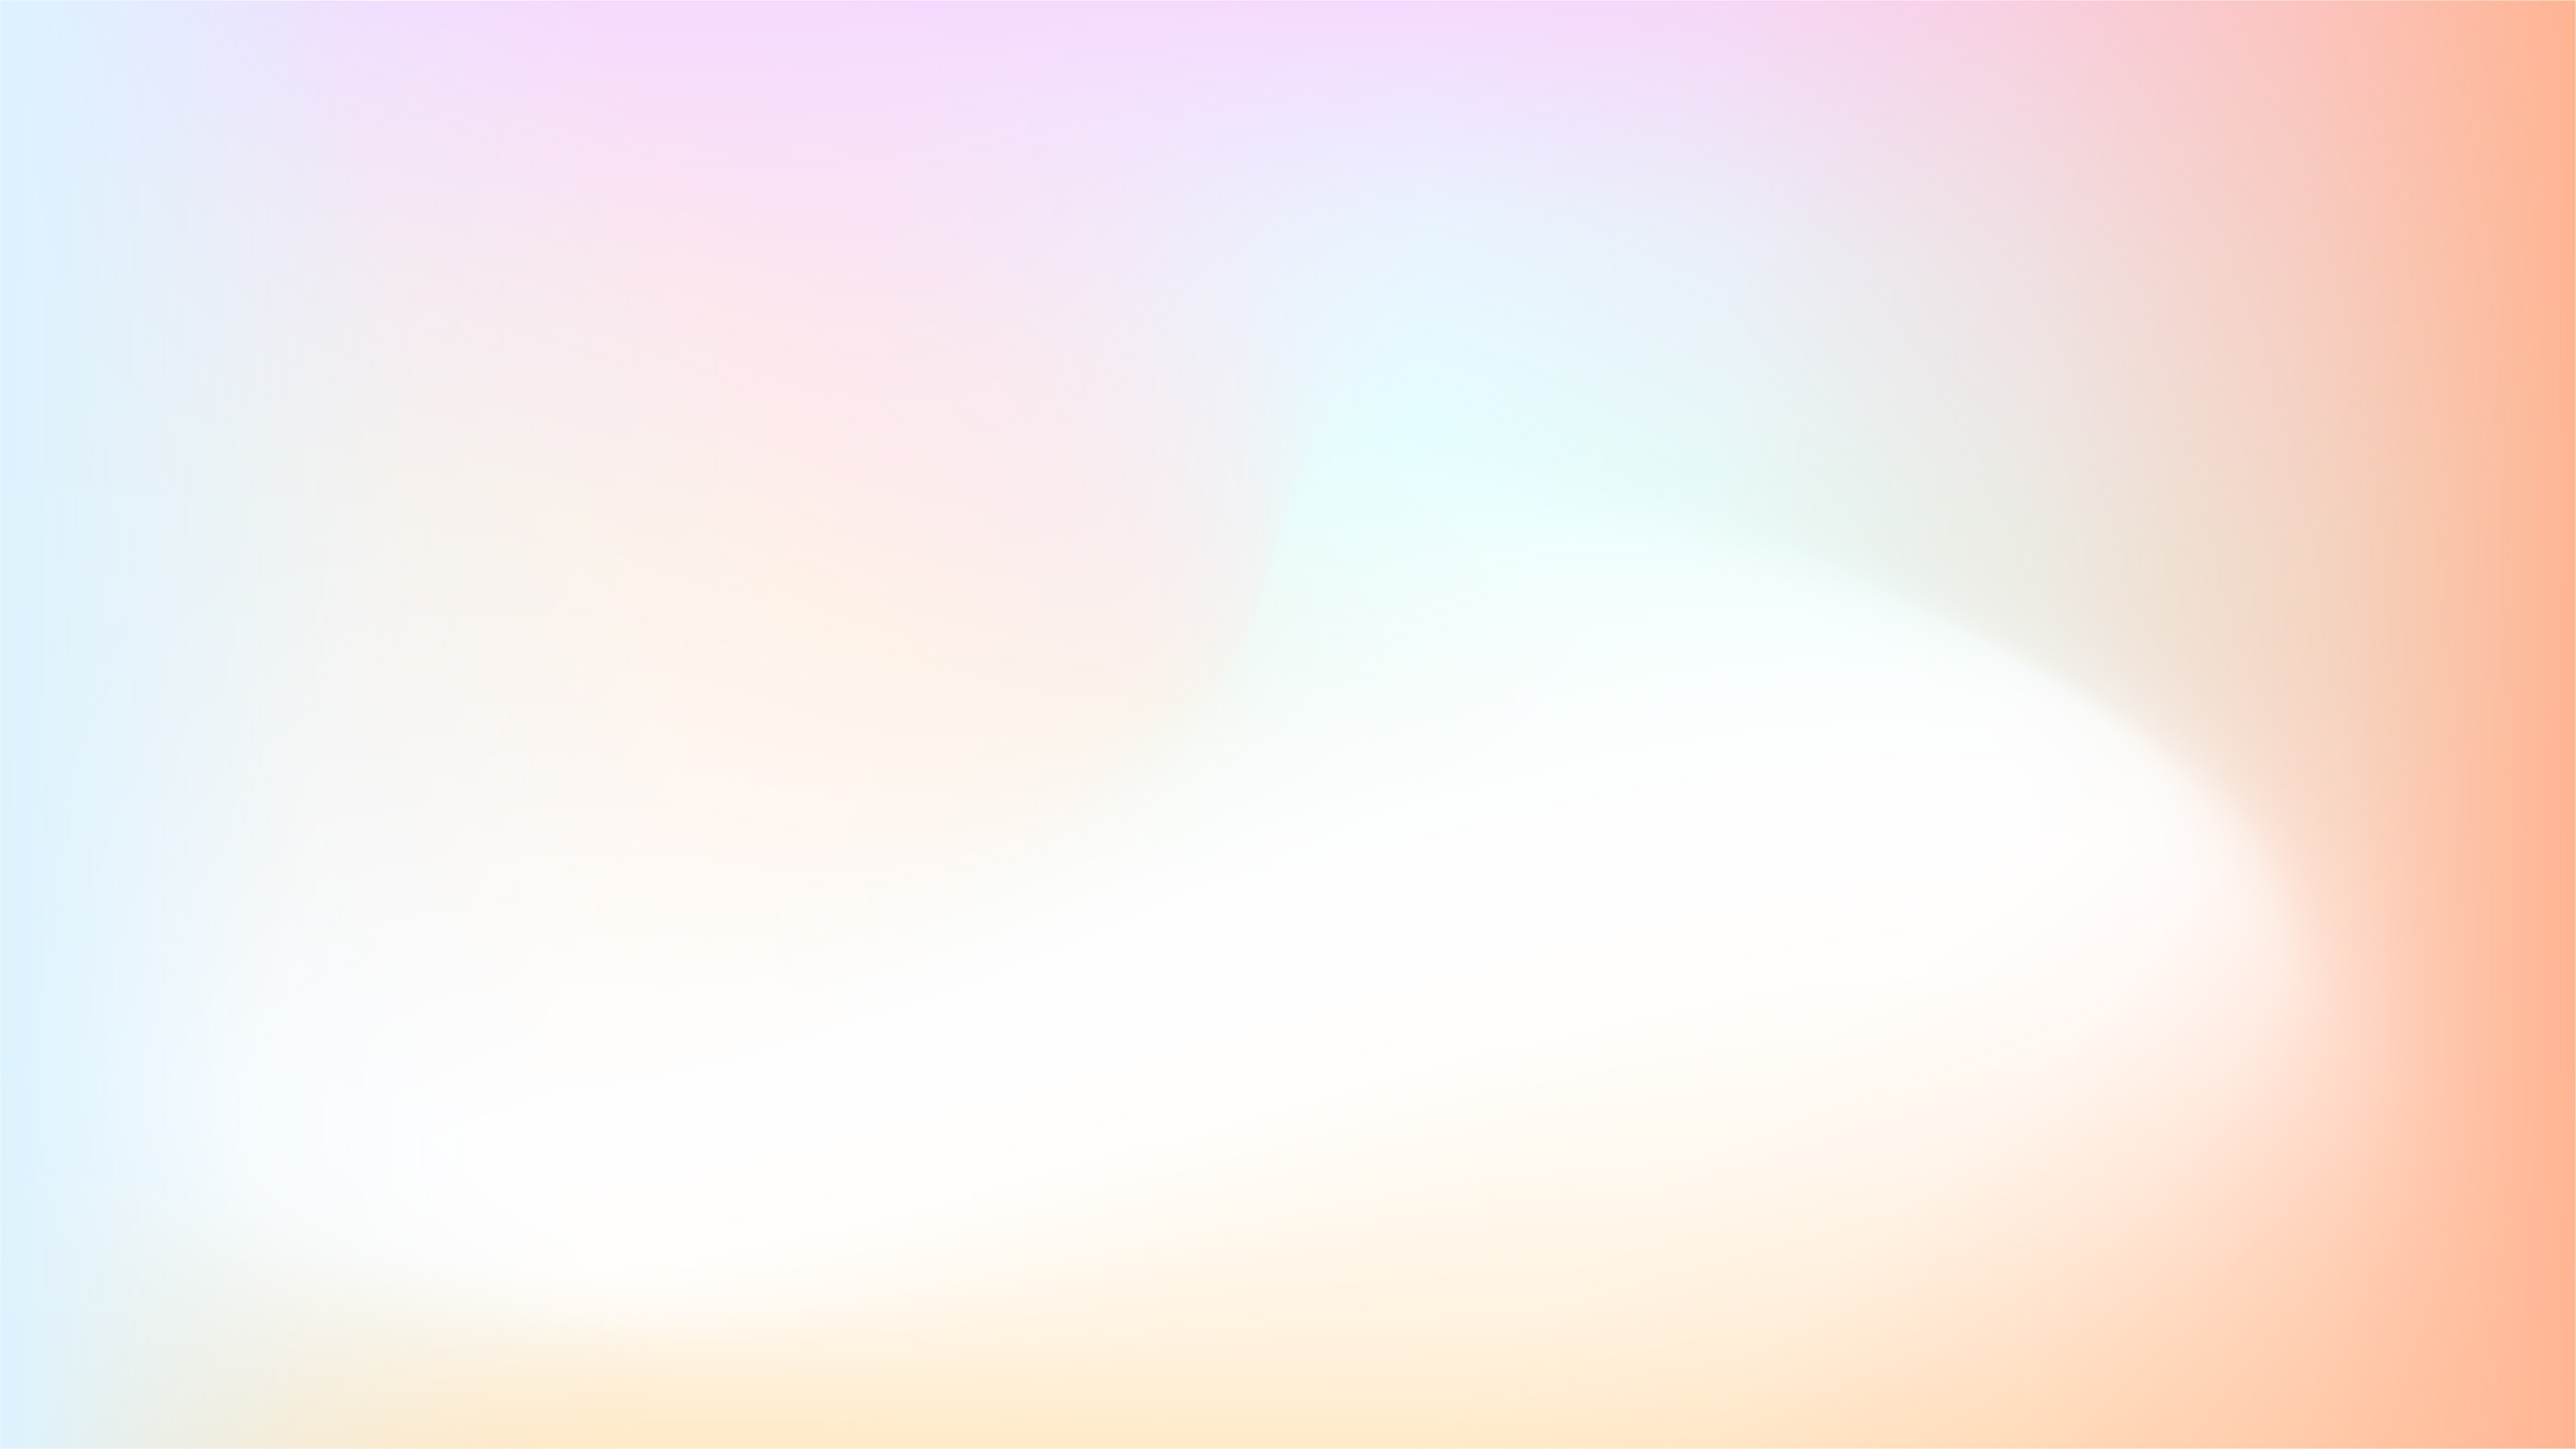 Free Holographic, Multicolor, Unicorn Vector Gradients - 22